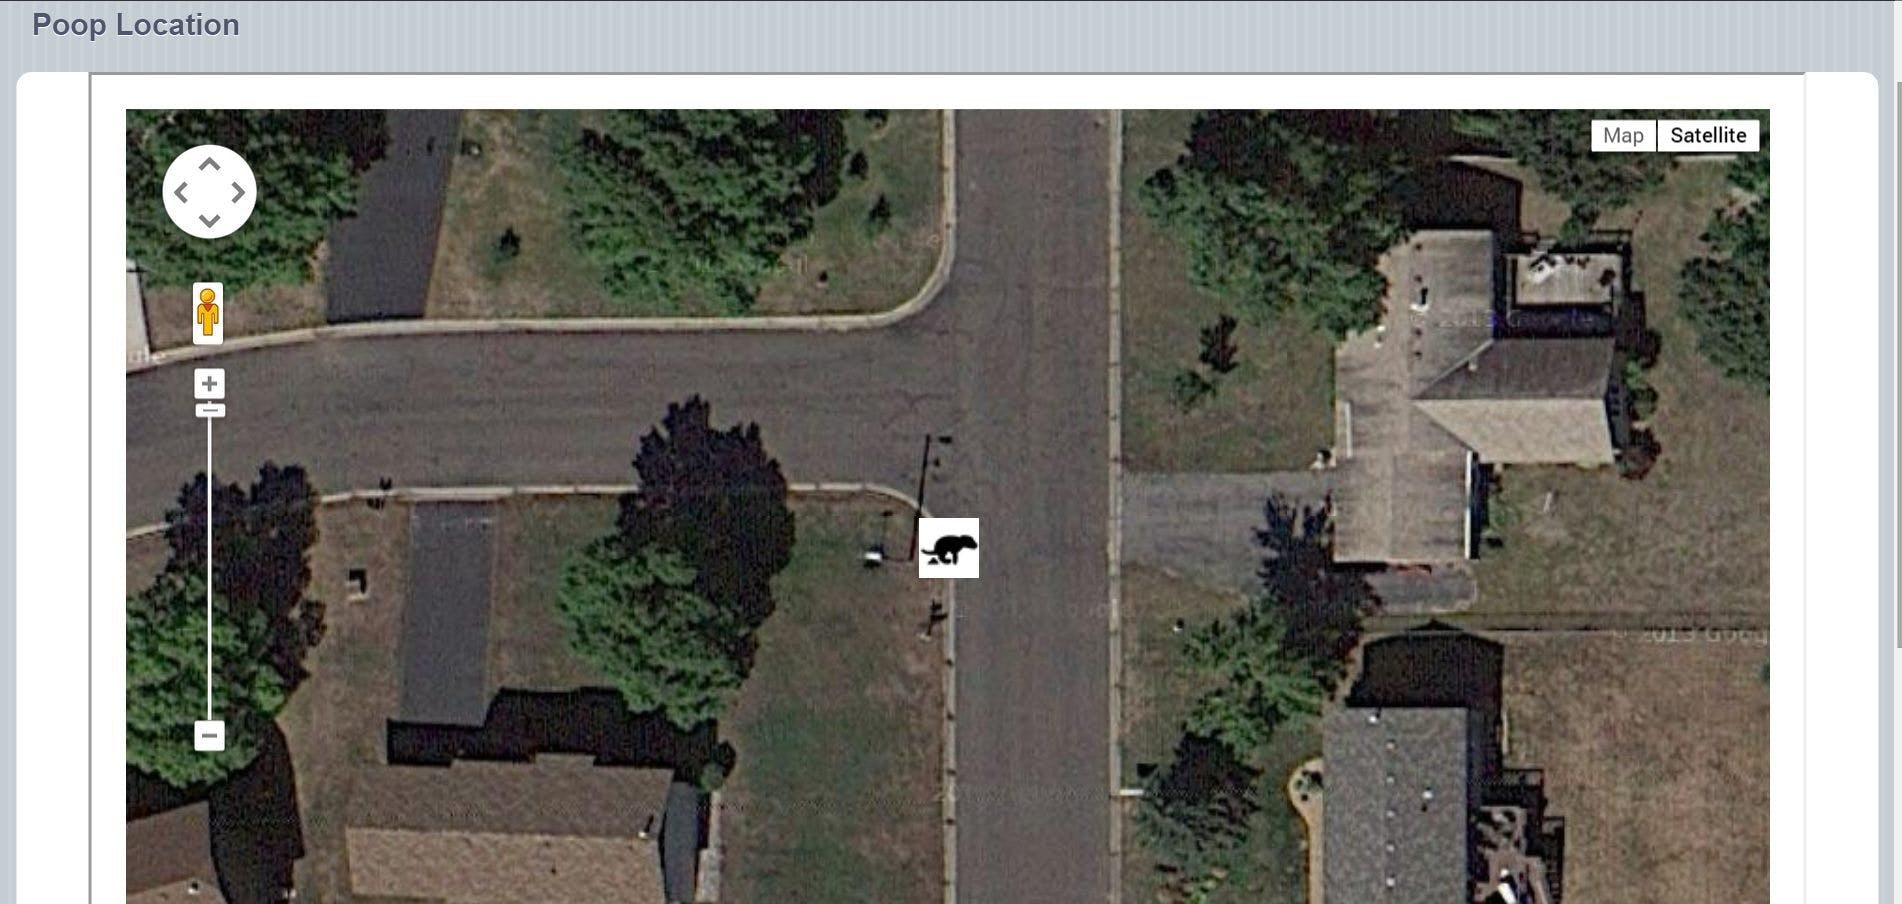 Google map of poop location.